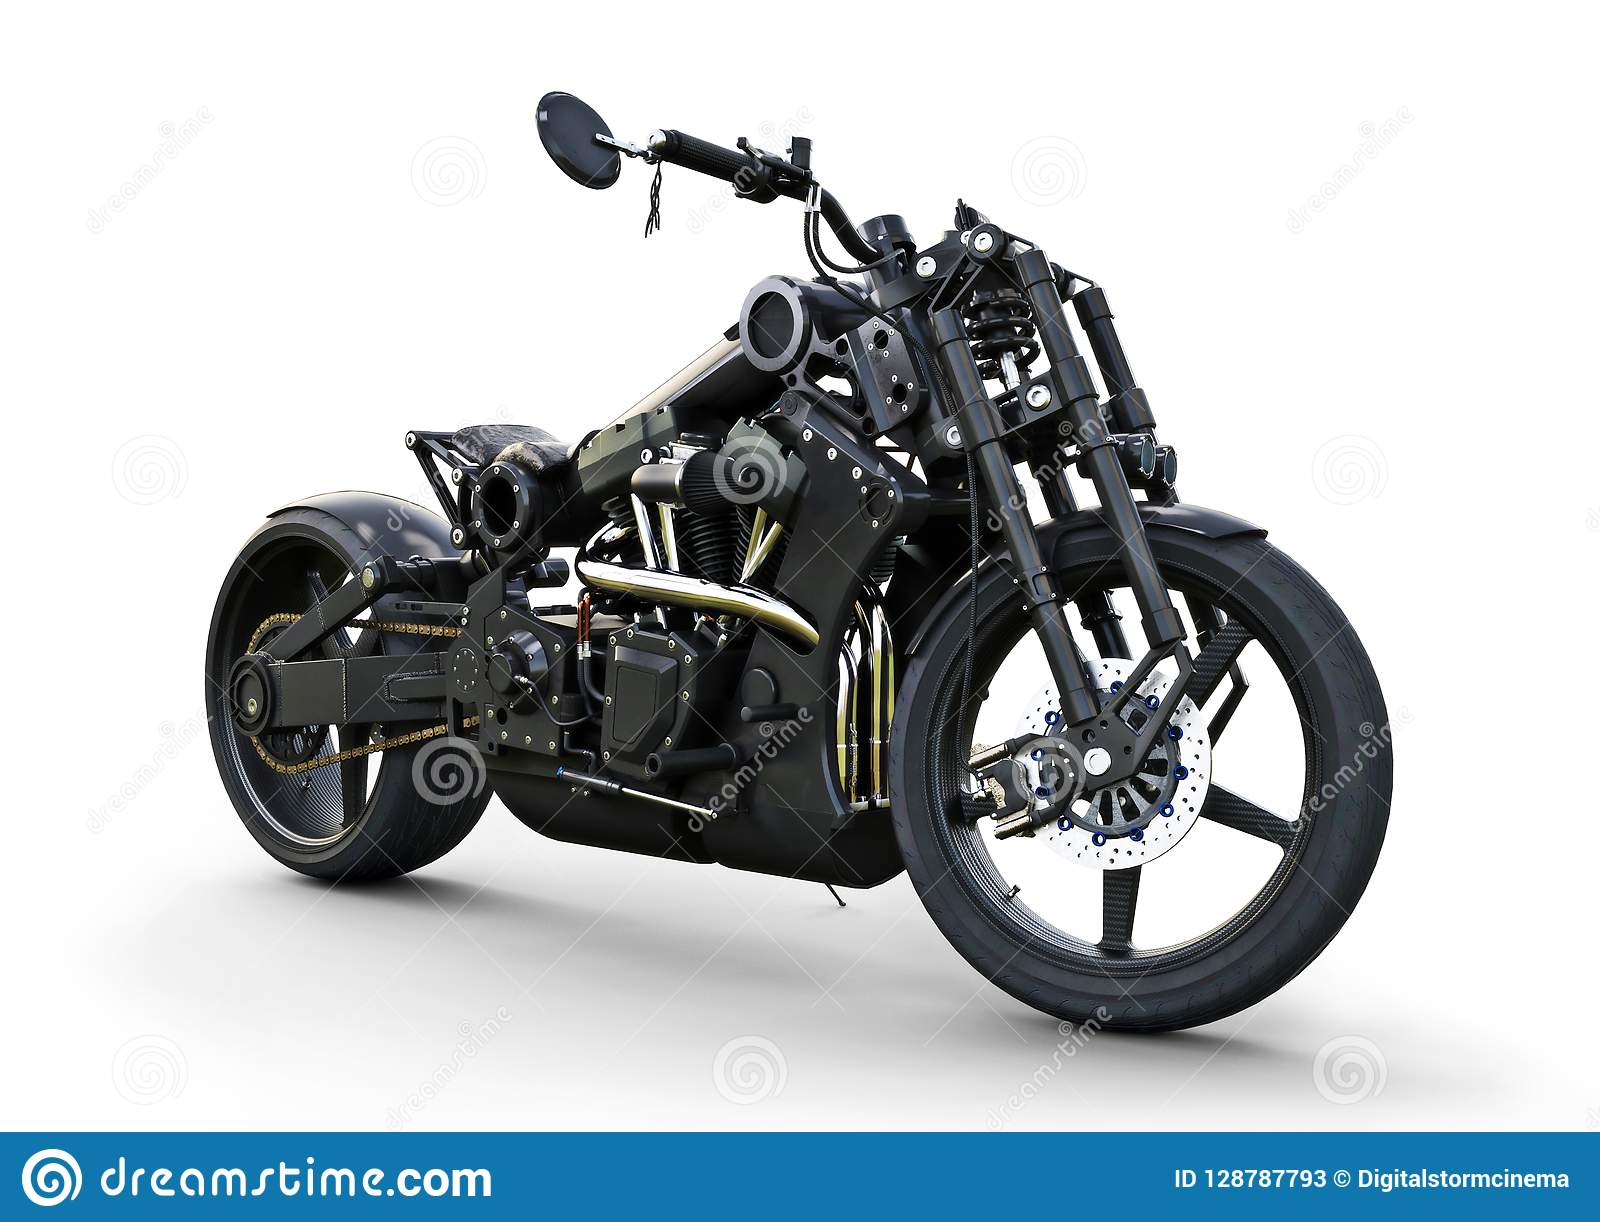 Custom street motorcycle with a racy modern style.